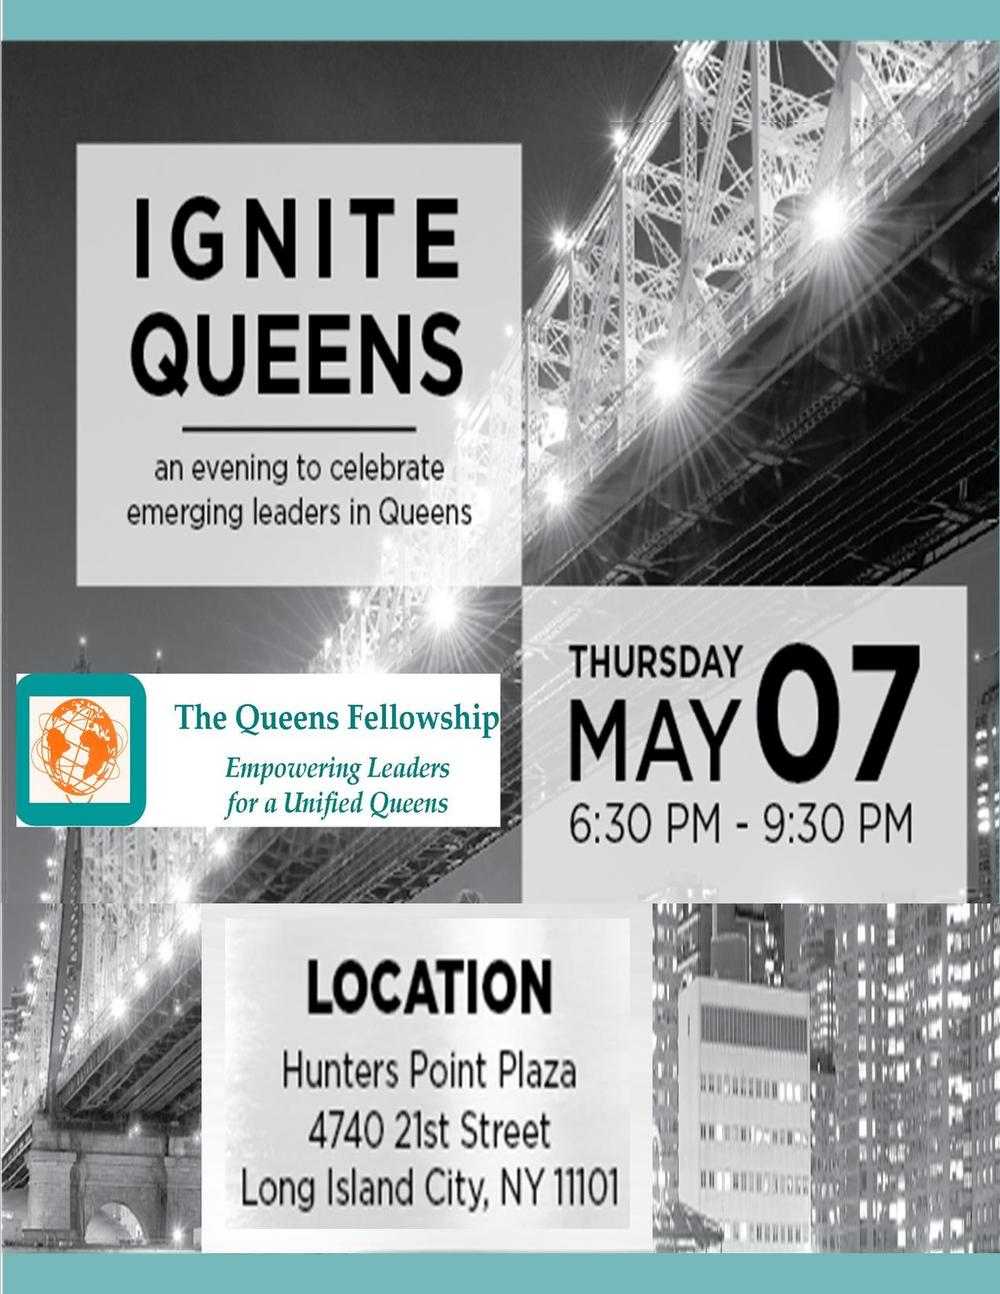 Guests enjoyed performances from local artists, sampled food and drinks from local Queens vendors and   networked with the 2014-2015 Queens Fellows and other   emerging leaders throughout the borough.      All of the proceeds from this event were used to support the 2015 One Queens Grant which distributed funds to    projects/programs for young adults (ages 14-25) in the areas of financial literacy, job readiness, STEAM education or entrepreneurship.